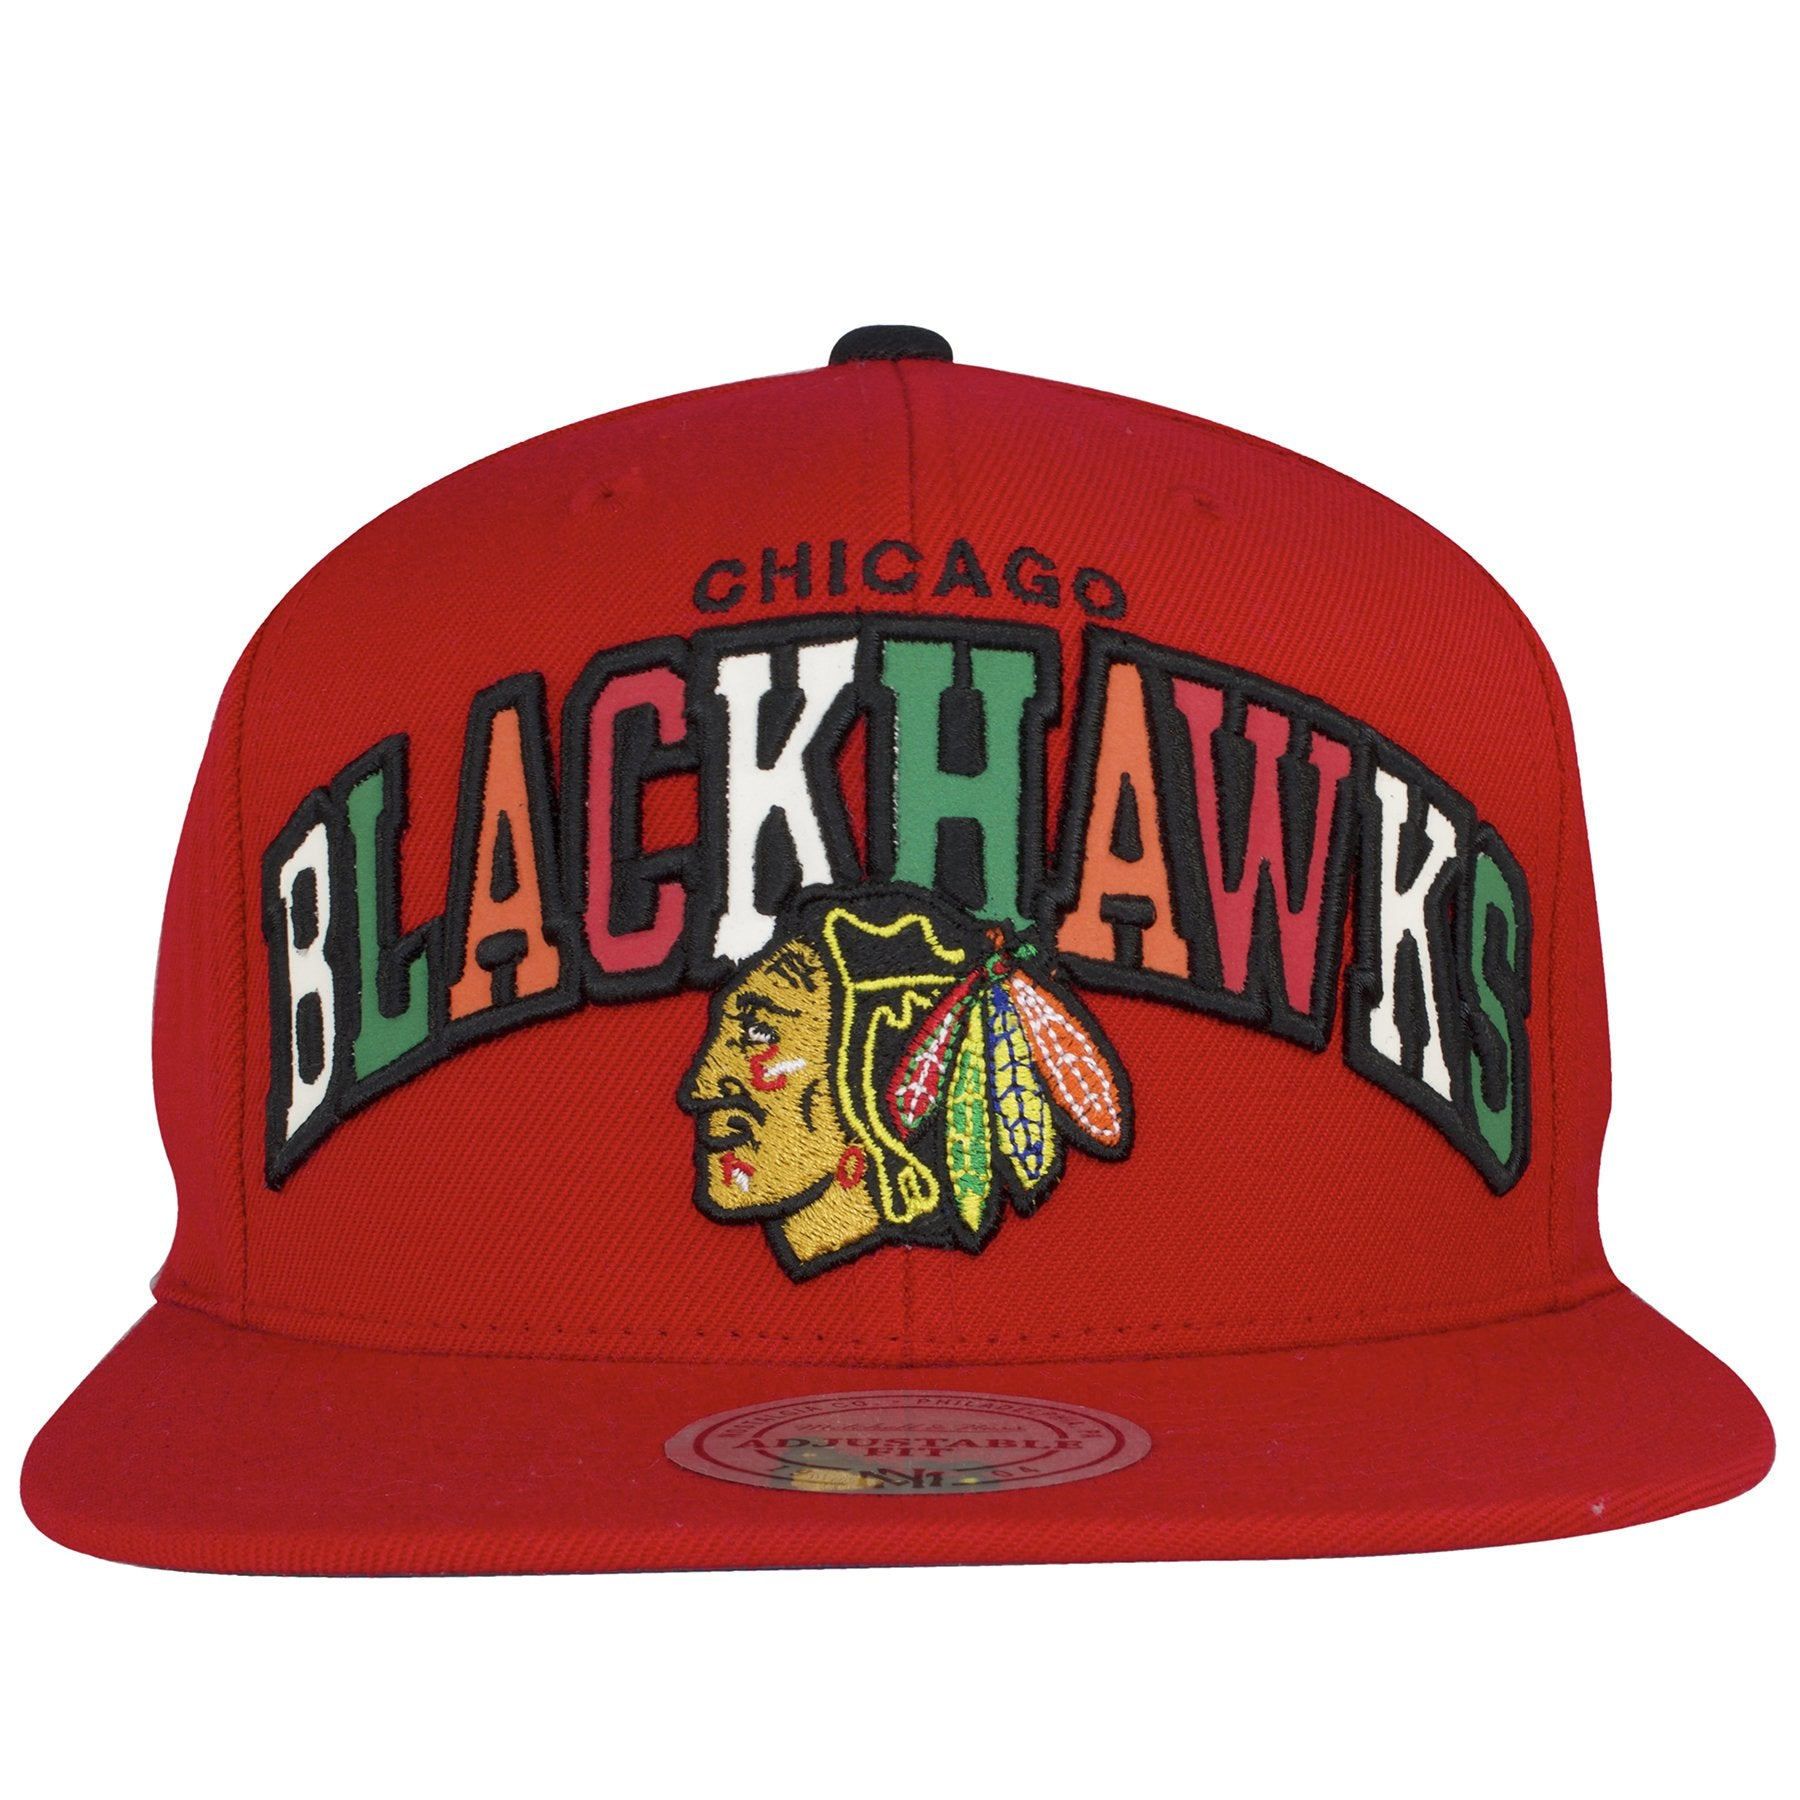 4b5c1822477 ... netherlands on the front of the chicago blackhawks reflective lettering  snapback hat is a red structured